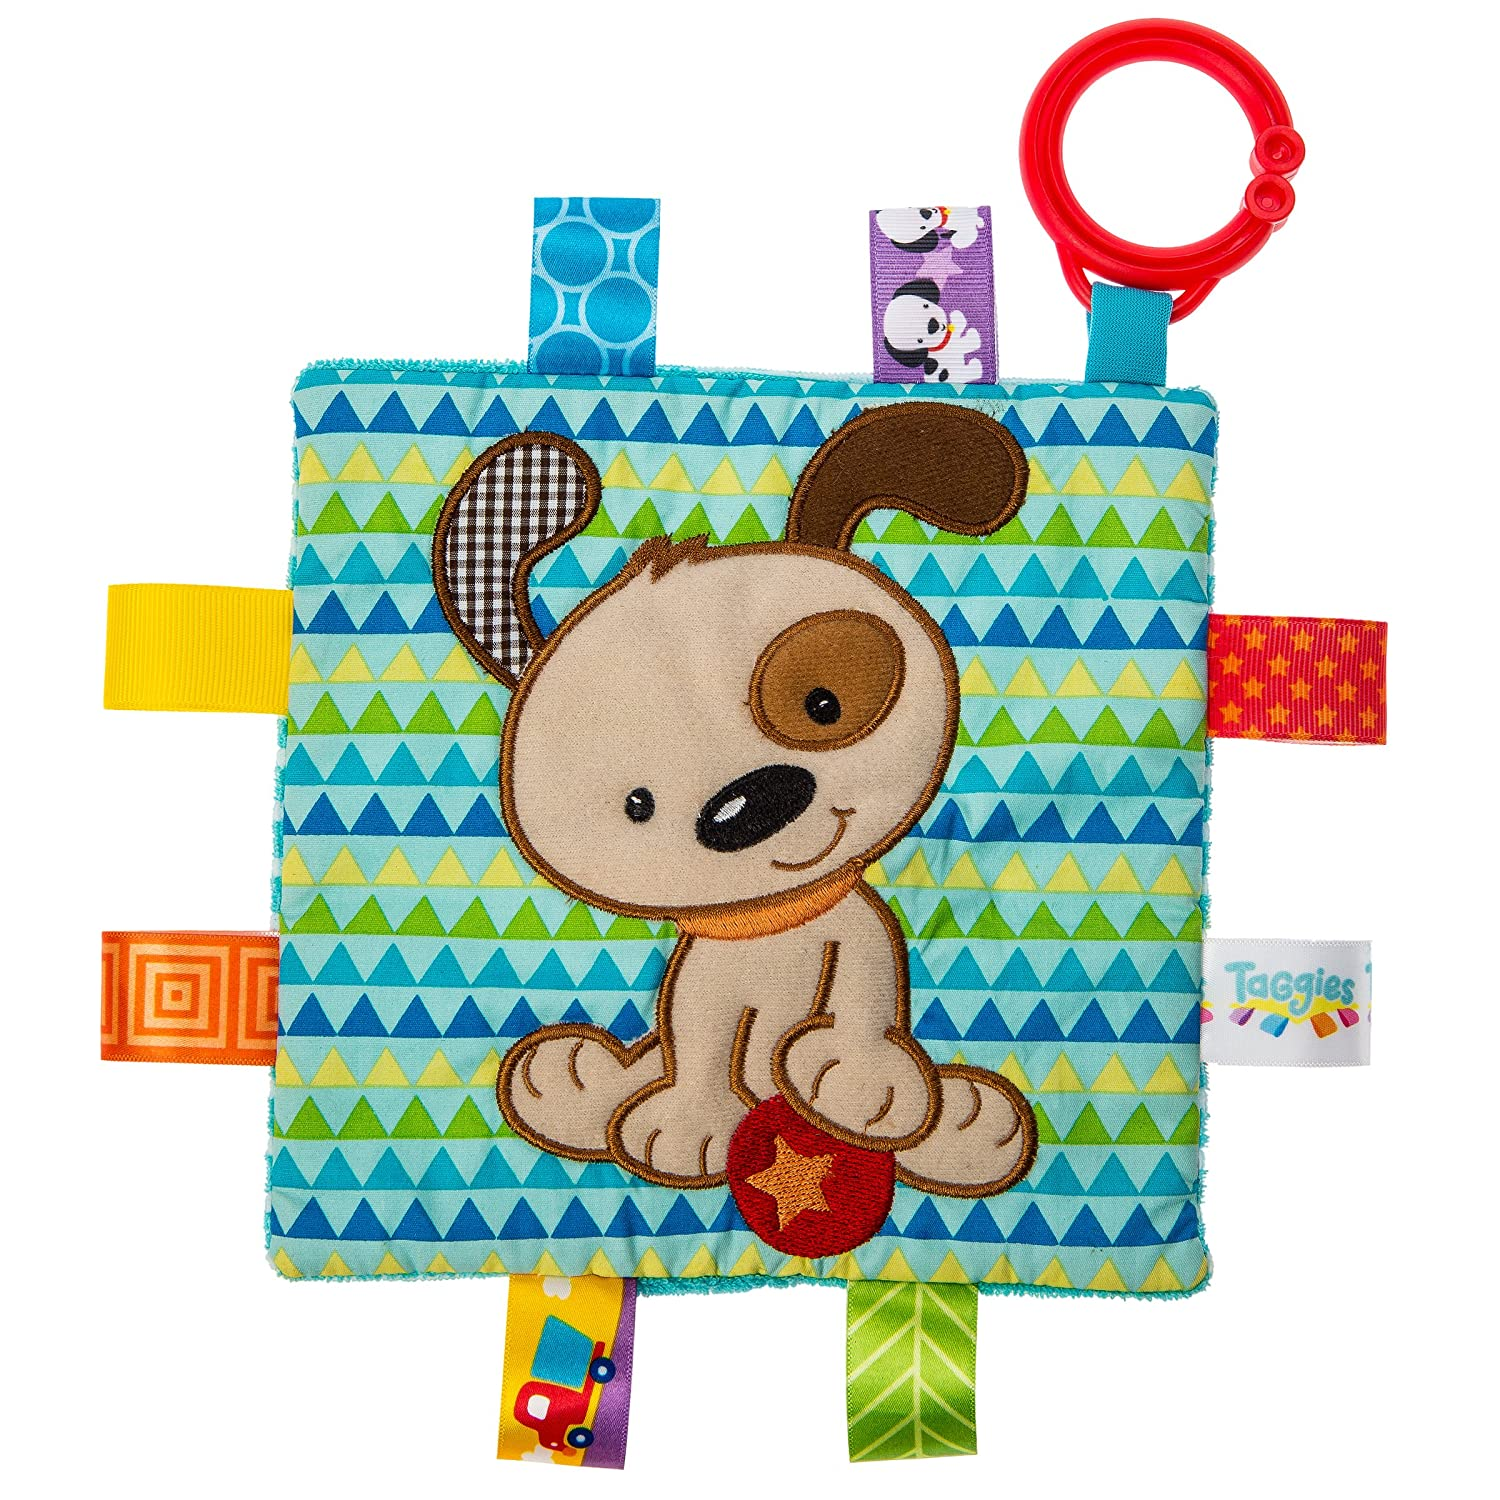 Taggies Crinkle Me Baby Toy, Brother Puppy 40173